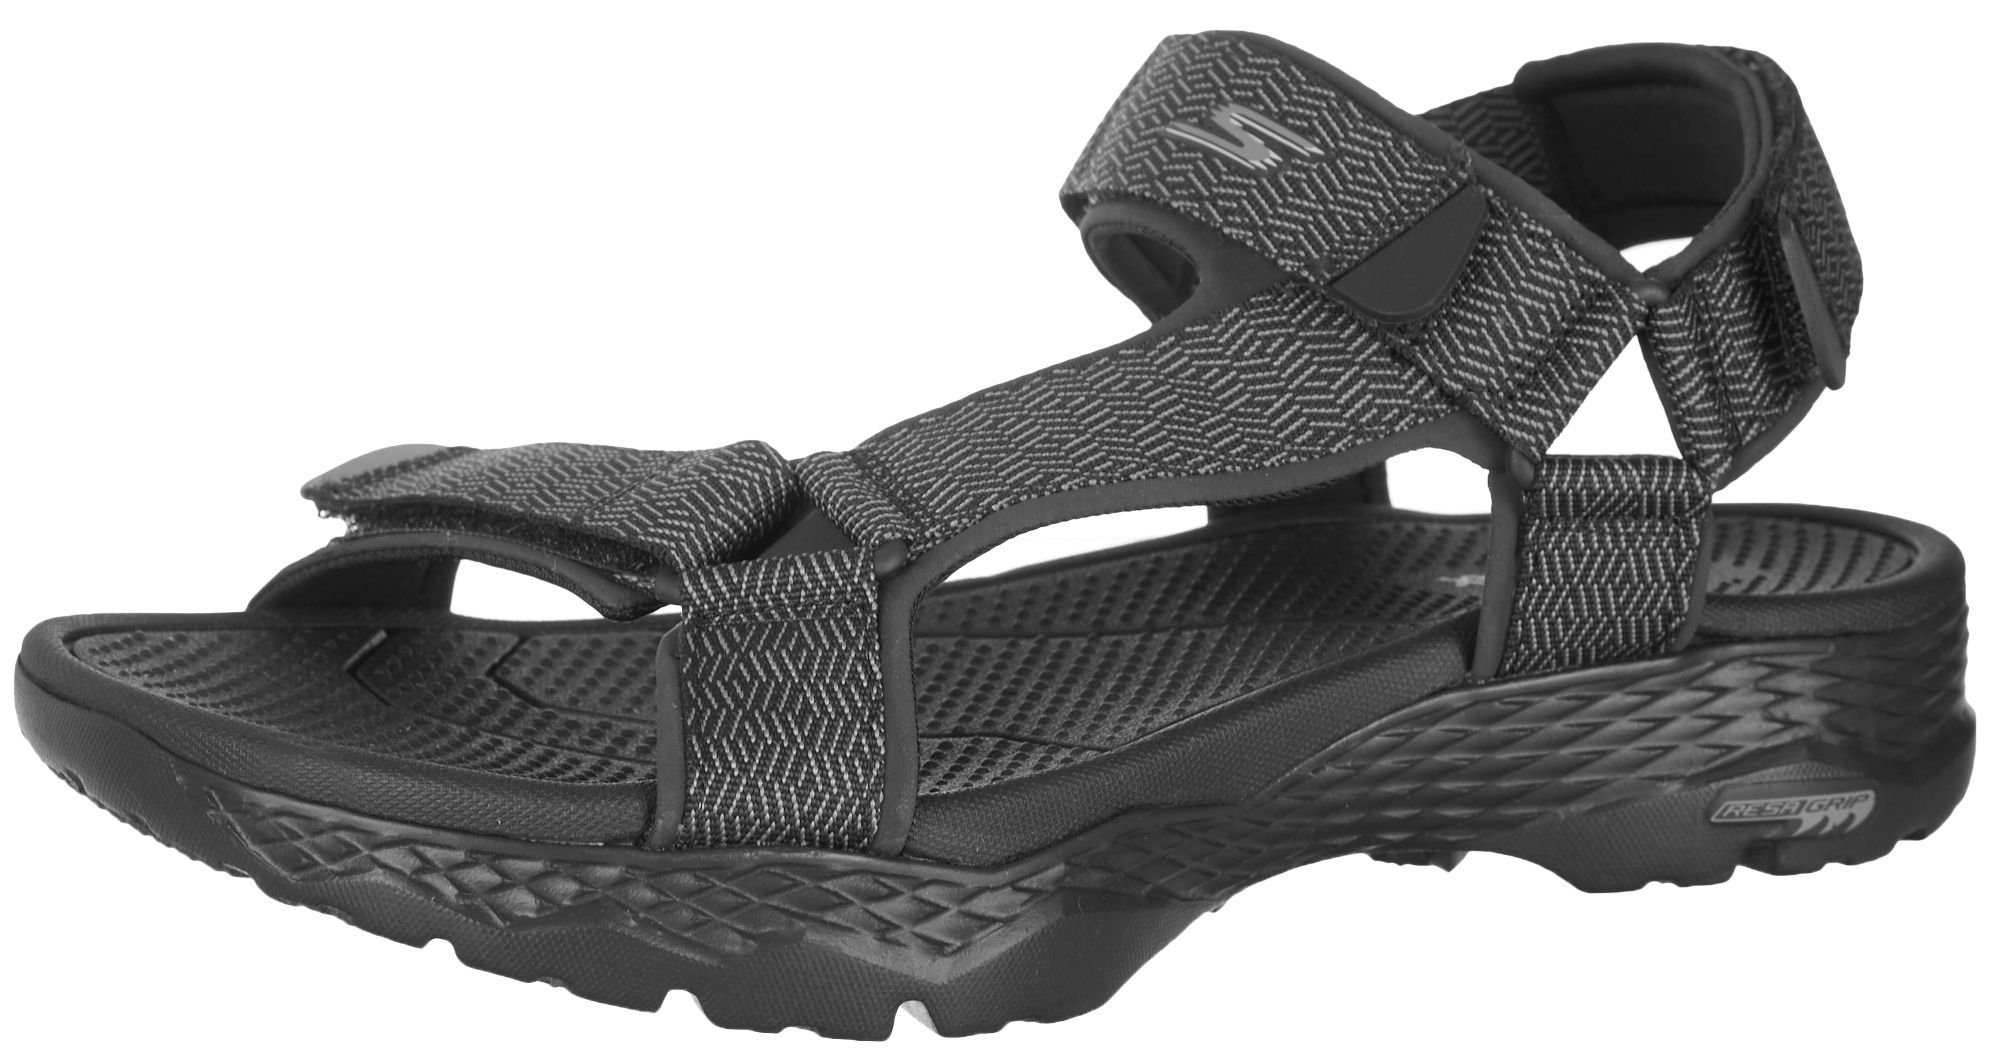 Skechers Men's GO Walk Outdoors-Nature Sport Sandal, Black/Gray, 11 M US